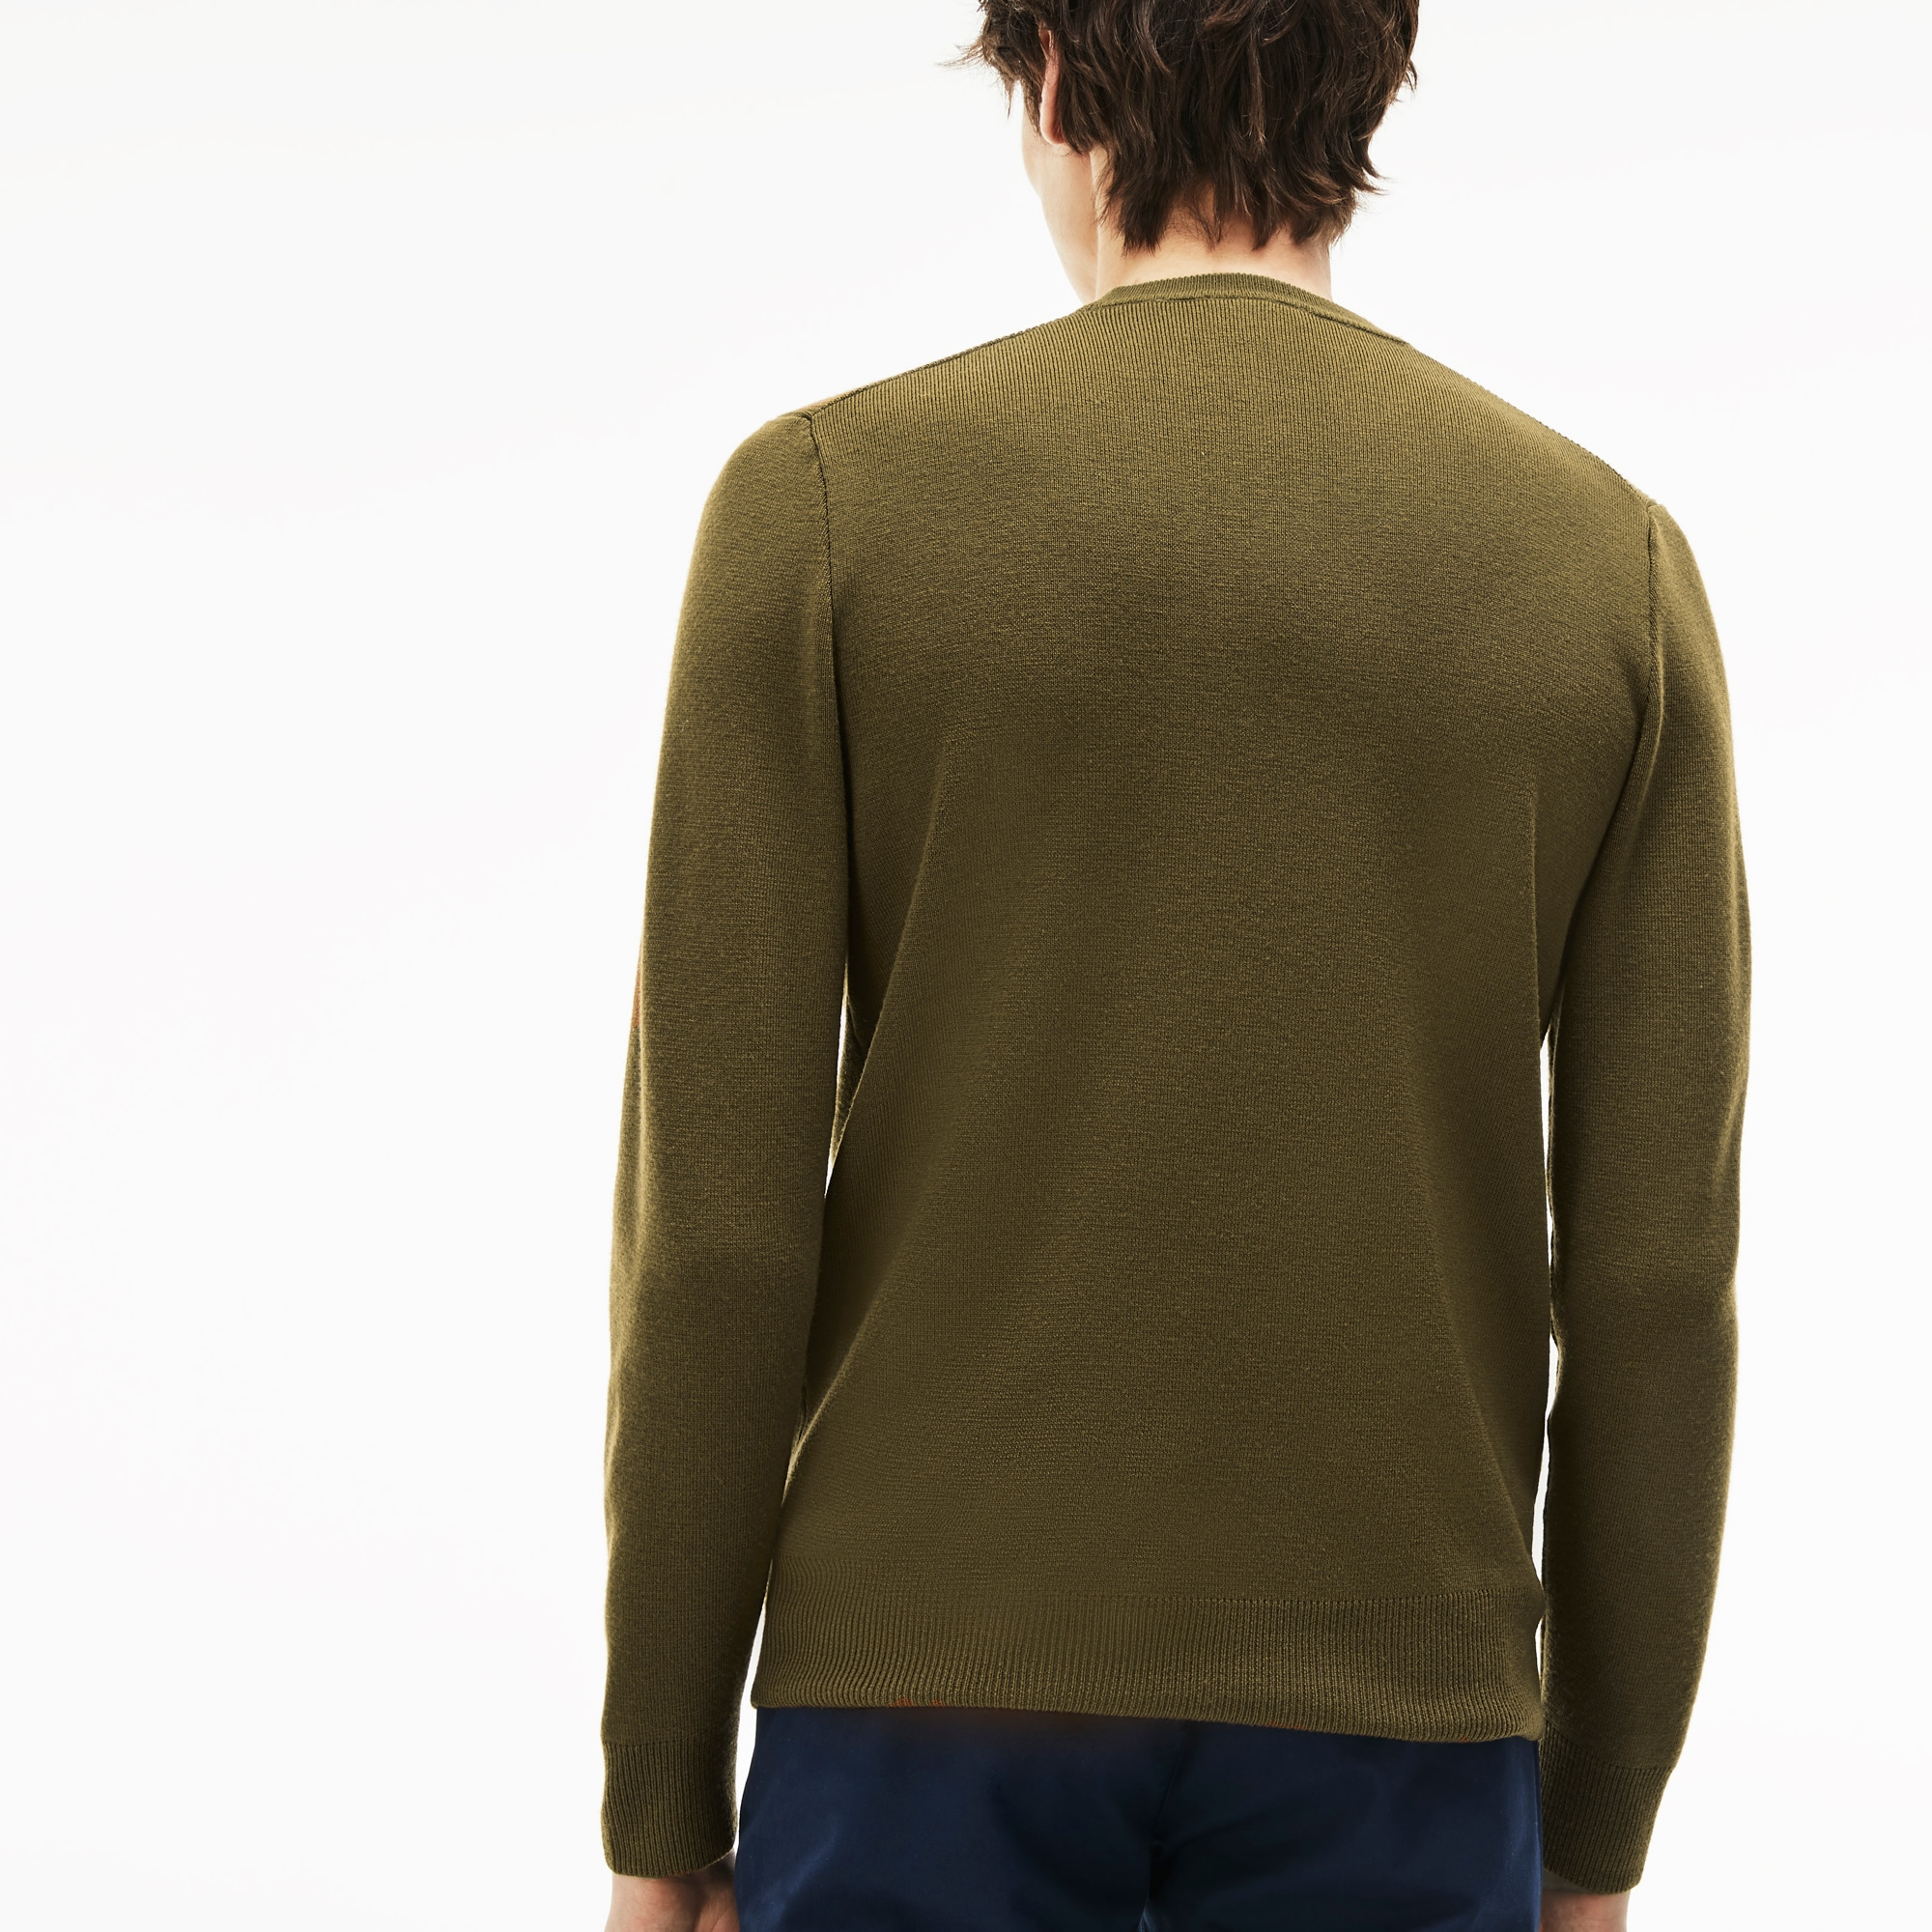 Men's Crew Neck Technical Knit Sweater